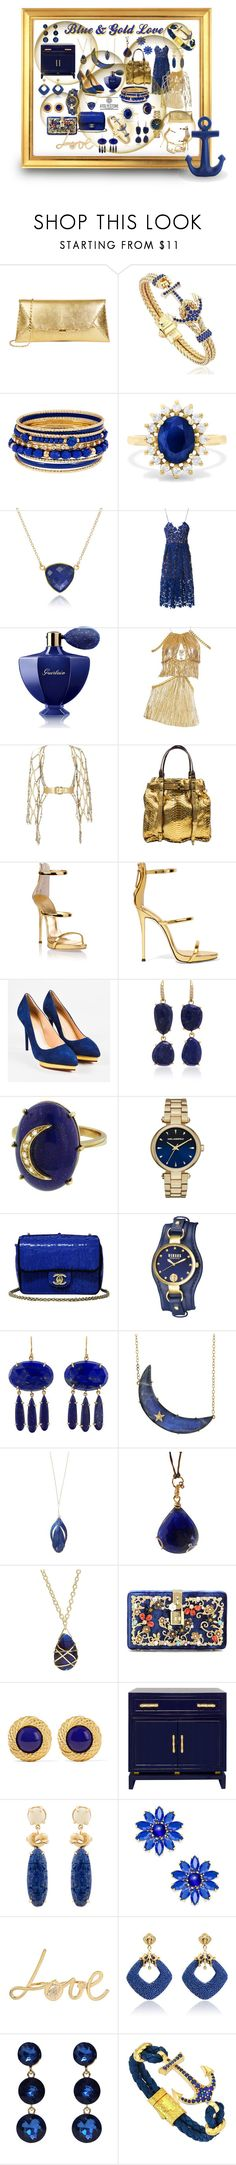 """for the love of Blue & Gold"" by caroline-buster-brown ❤ liked on Polyvore featuring Effy Jewelry, self-portrait, Guerlain, Zana Bayne, Lanvin, Giuseppe Zanotti, Charlotte Olympia, Lauren K, Andrea Fohrman and Karl Lagerfeld"